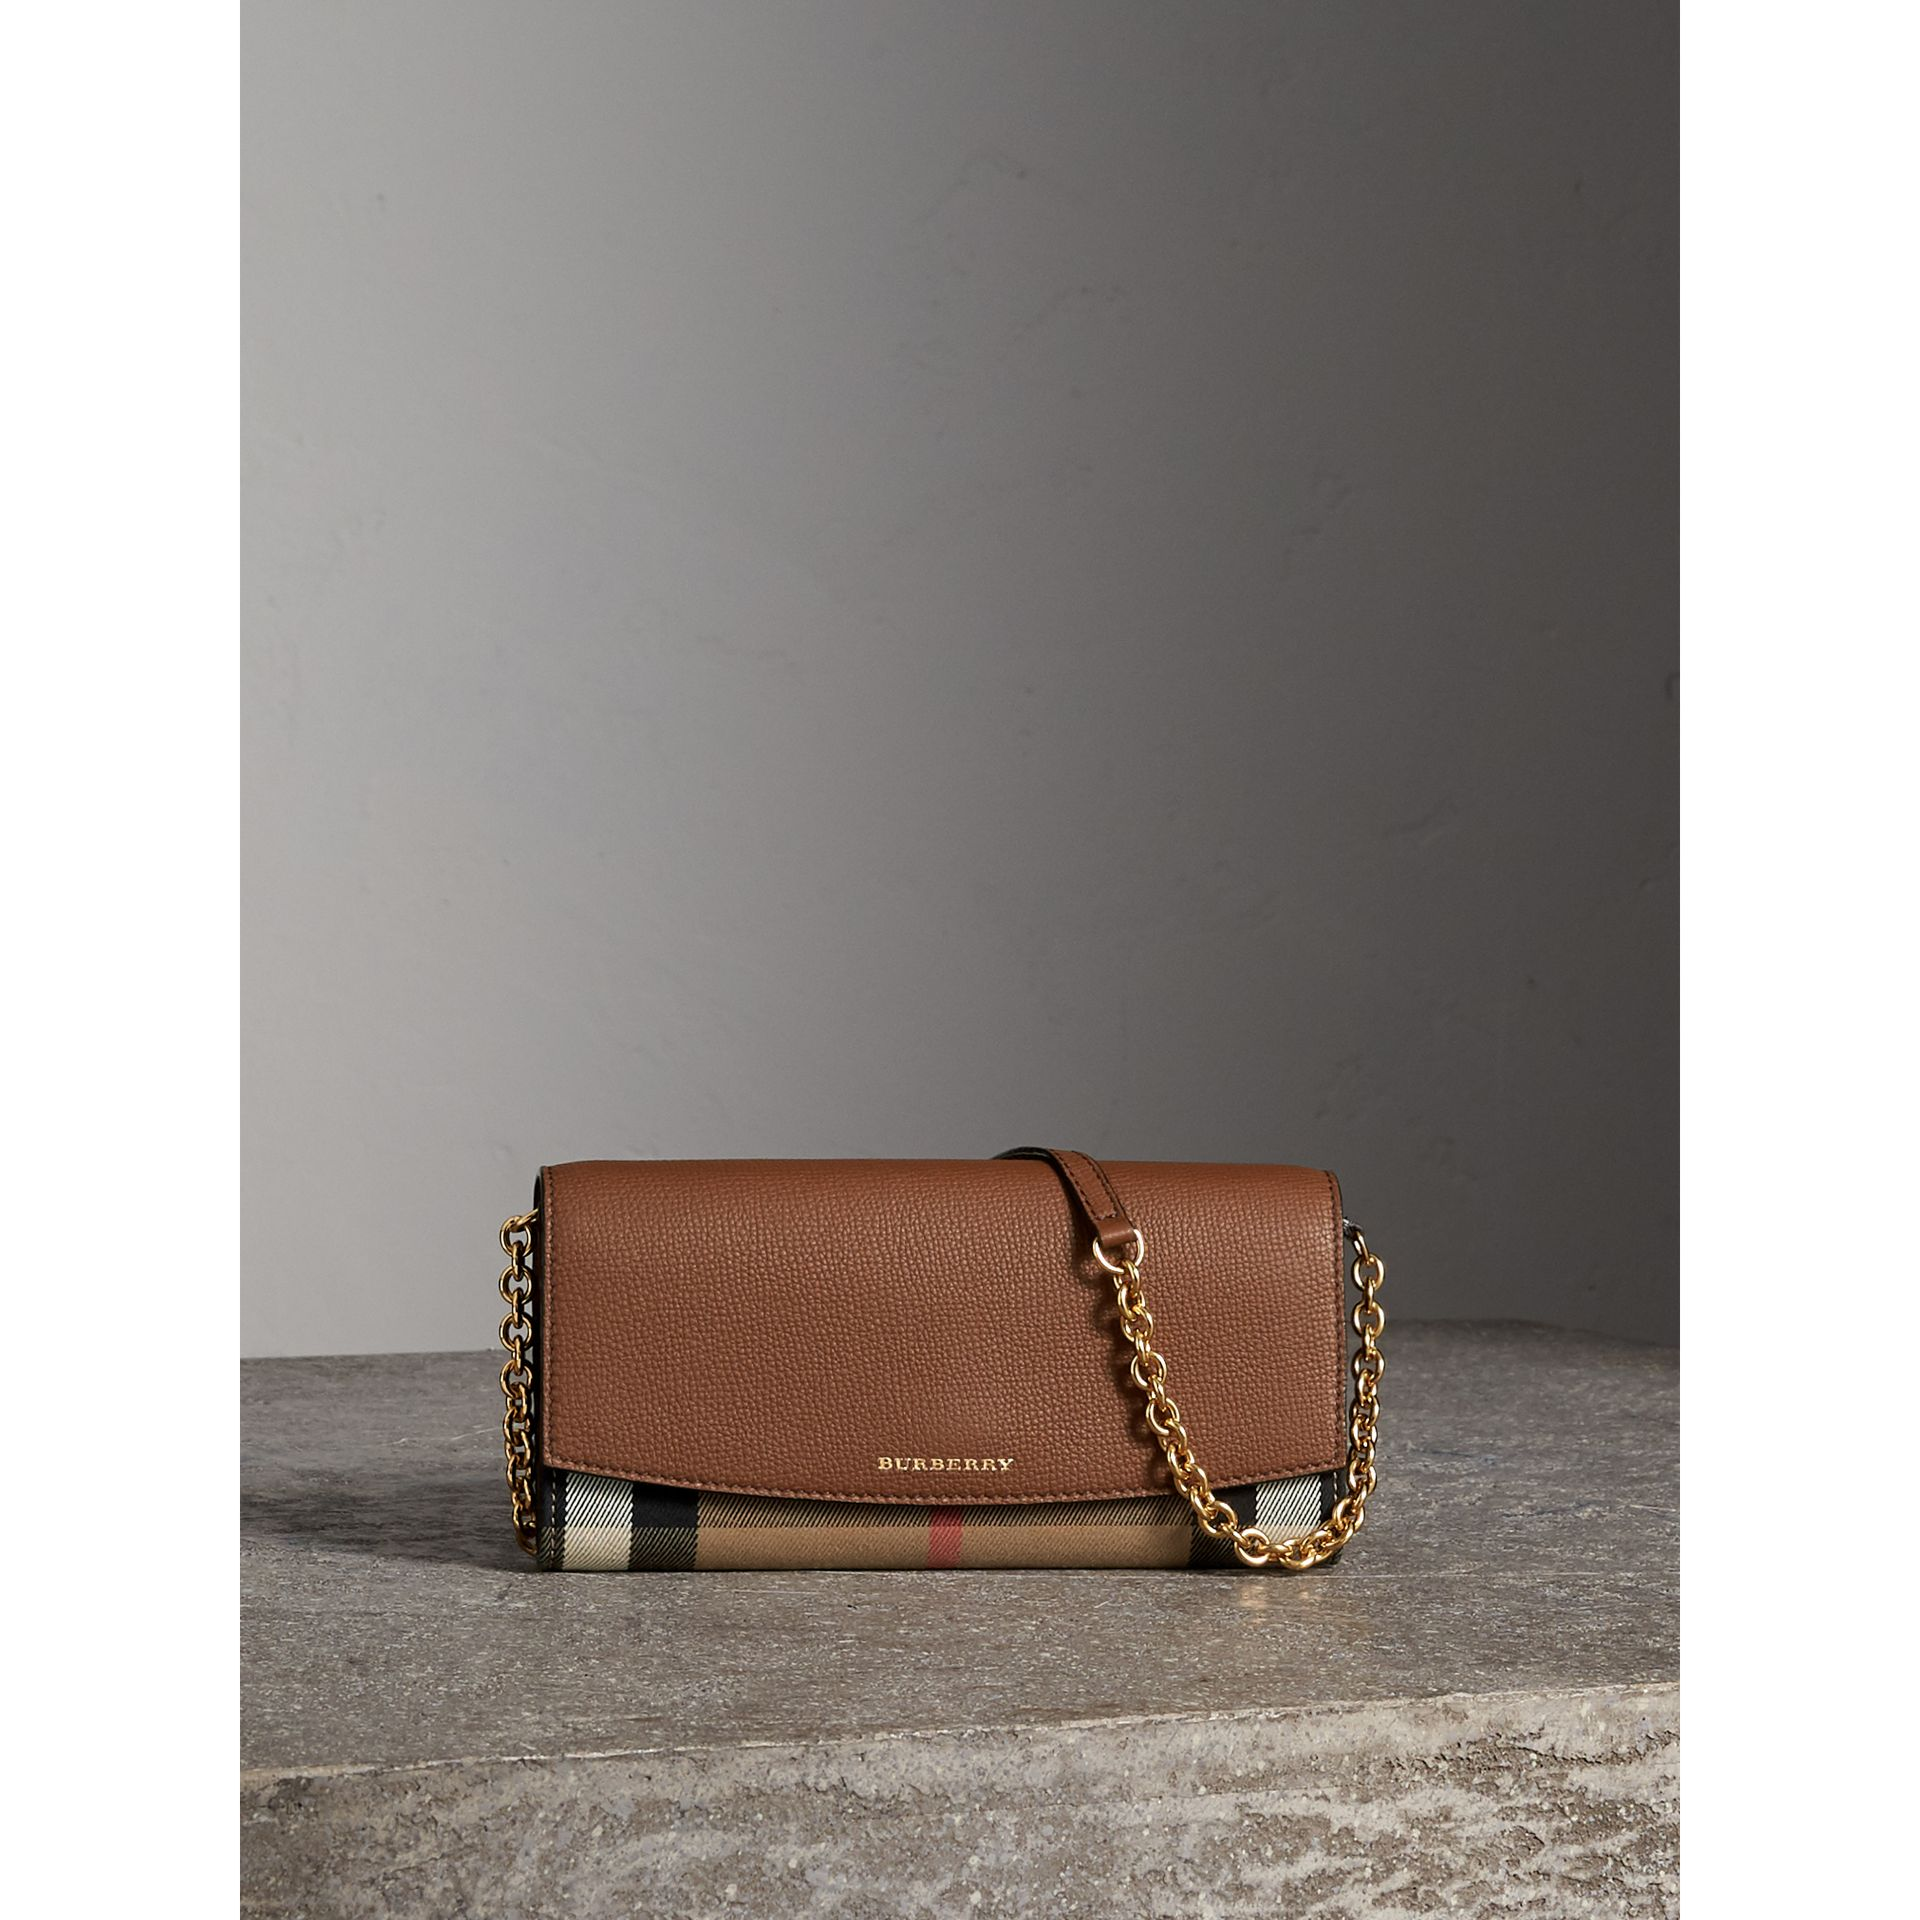 House Check and Leather Wallet with Chain in Tan - Women | Burberry - gallery image 1